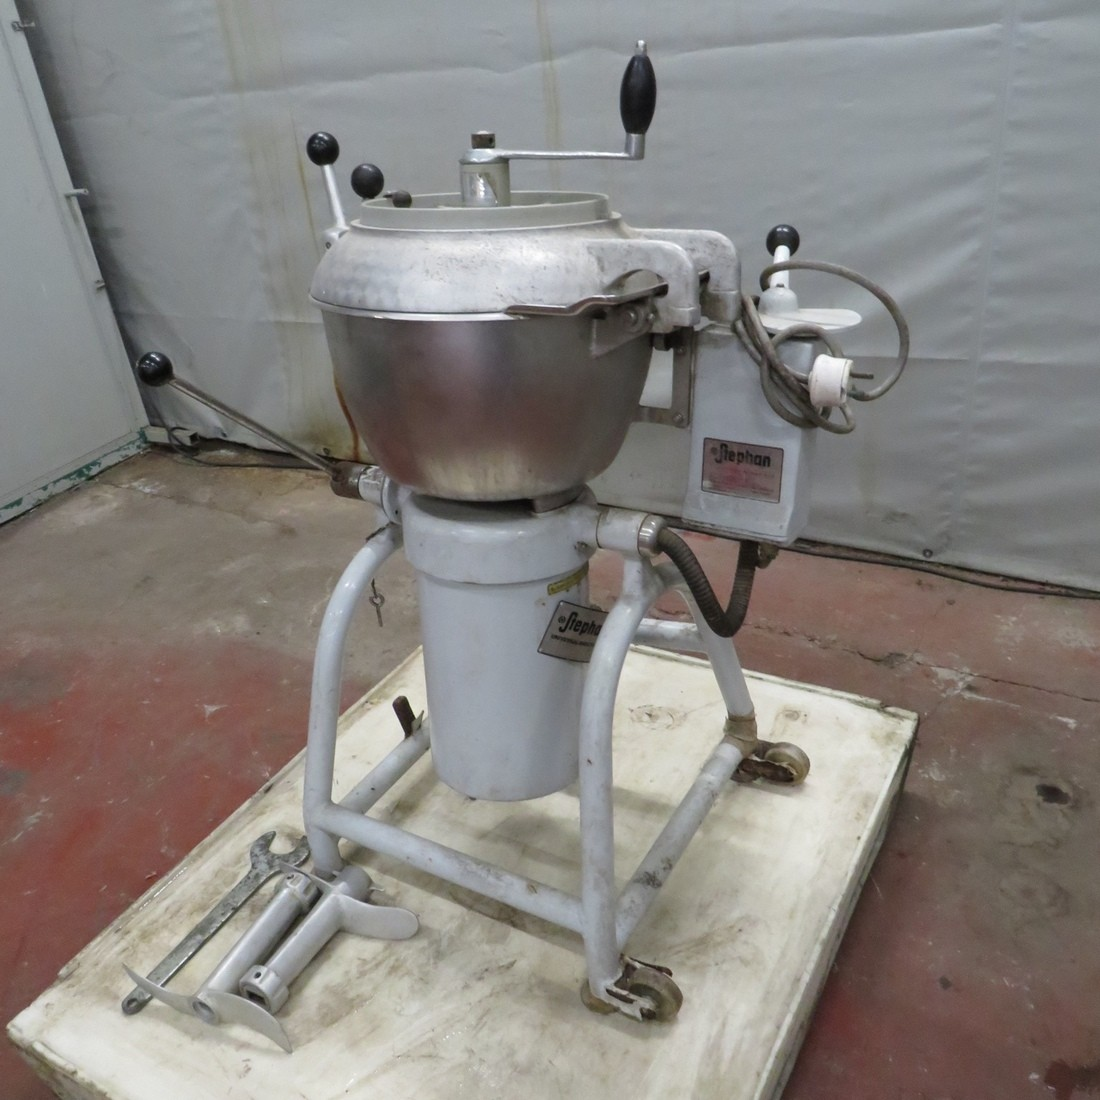 R6ME6373  Stainless steel STEPHAN Mixer cutter UM25/3 type